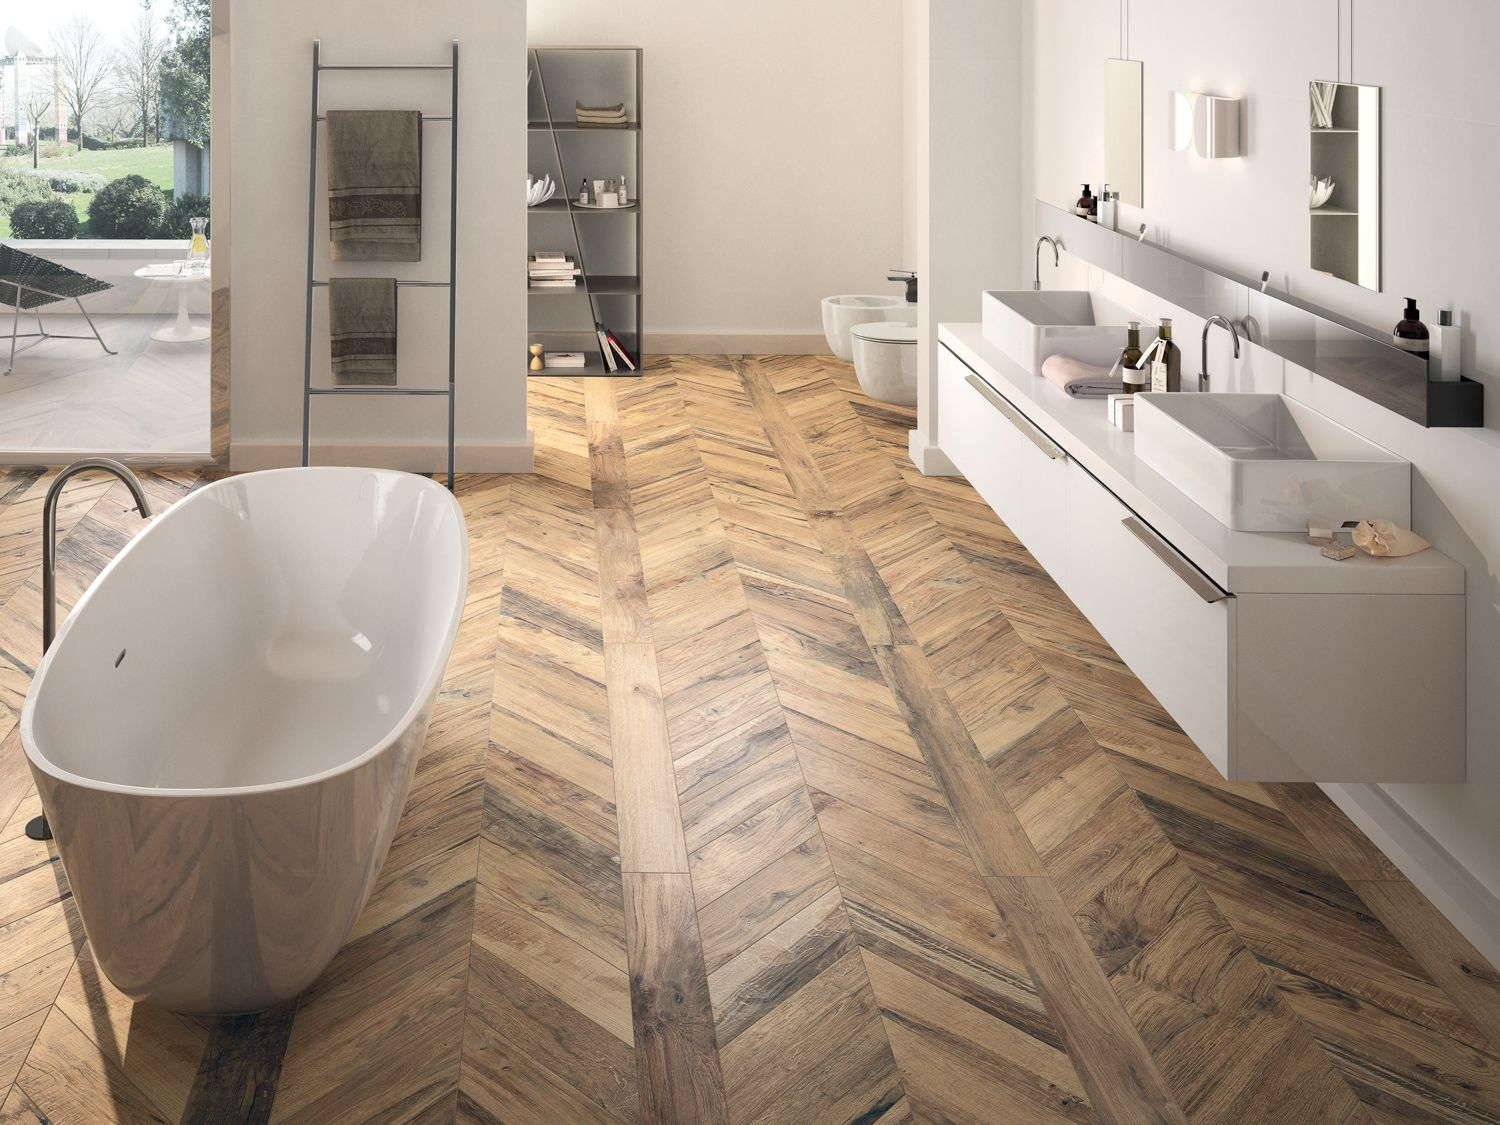 Millelegni Scottish Oak Wood Look Tile Bathroom Wood